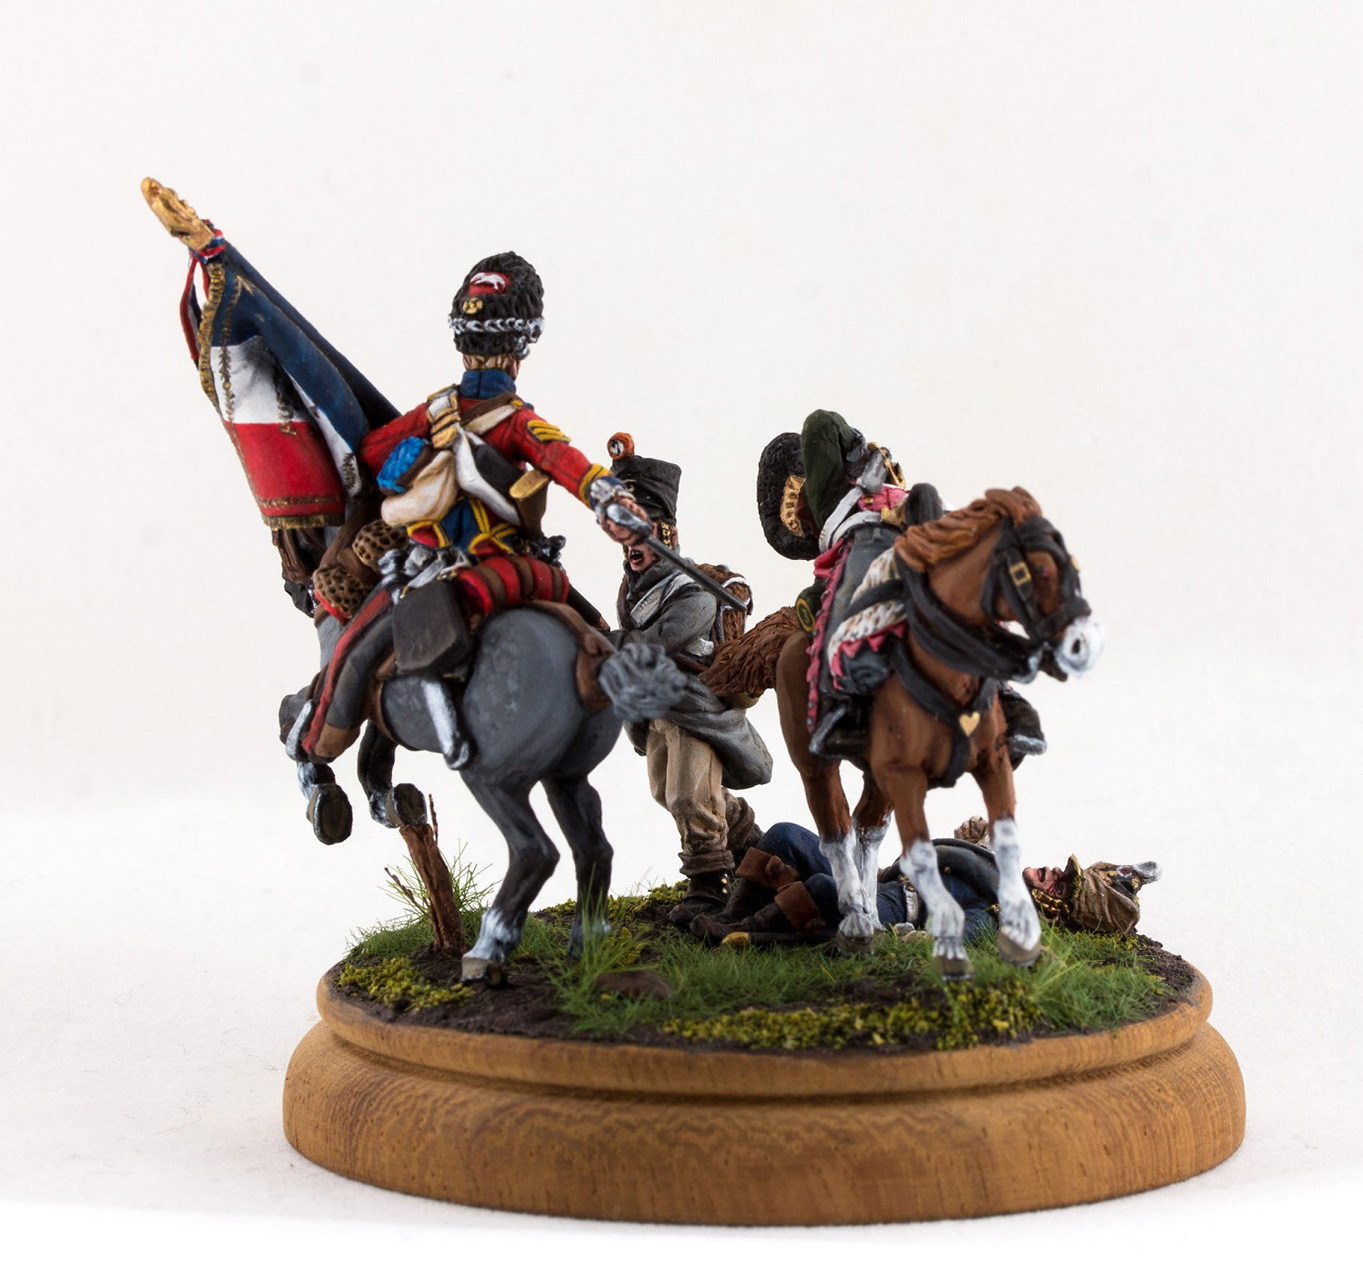 Figures: Capture of 45th line regt. standard at Waterloo, photo #5